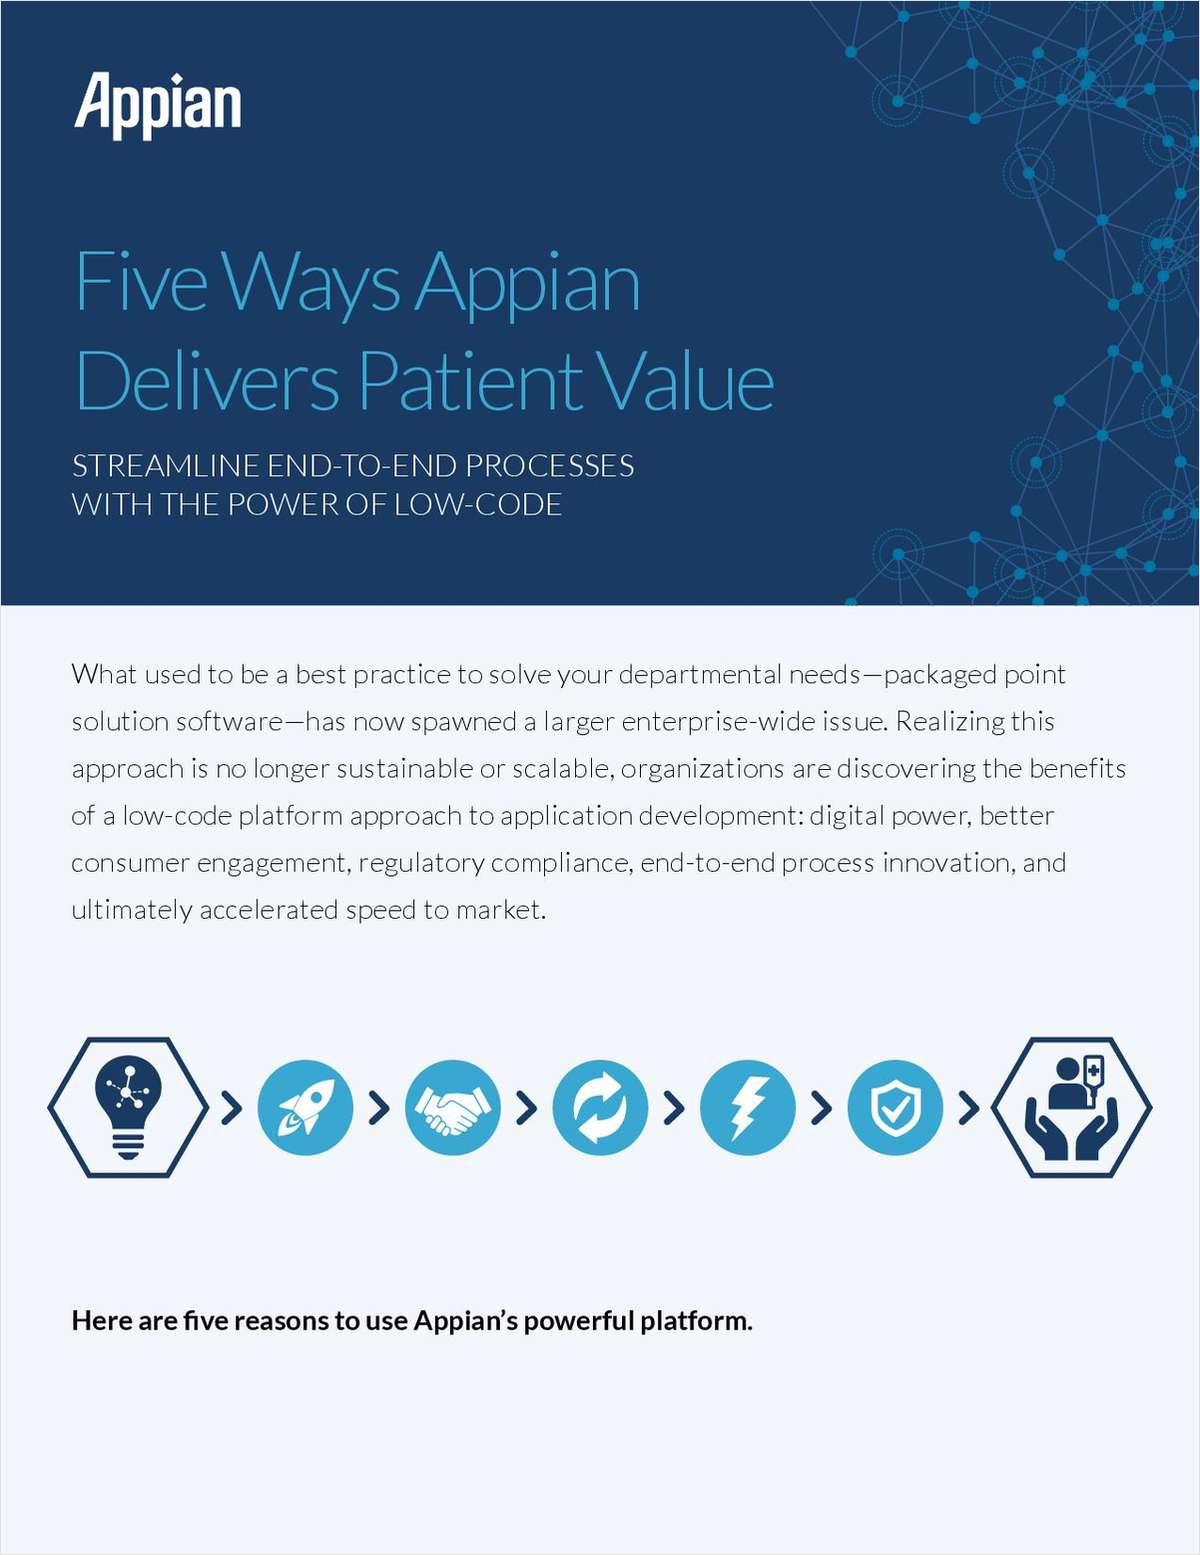 Five Ways Appian Delivers Patient Value